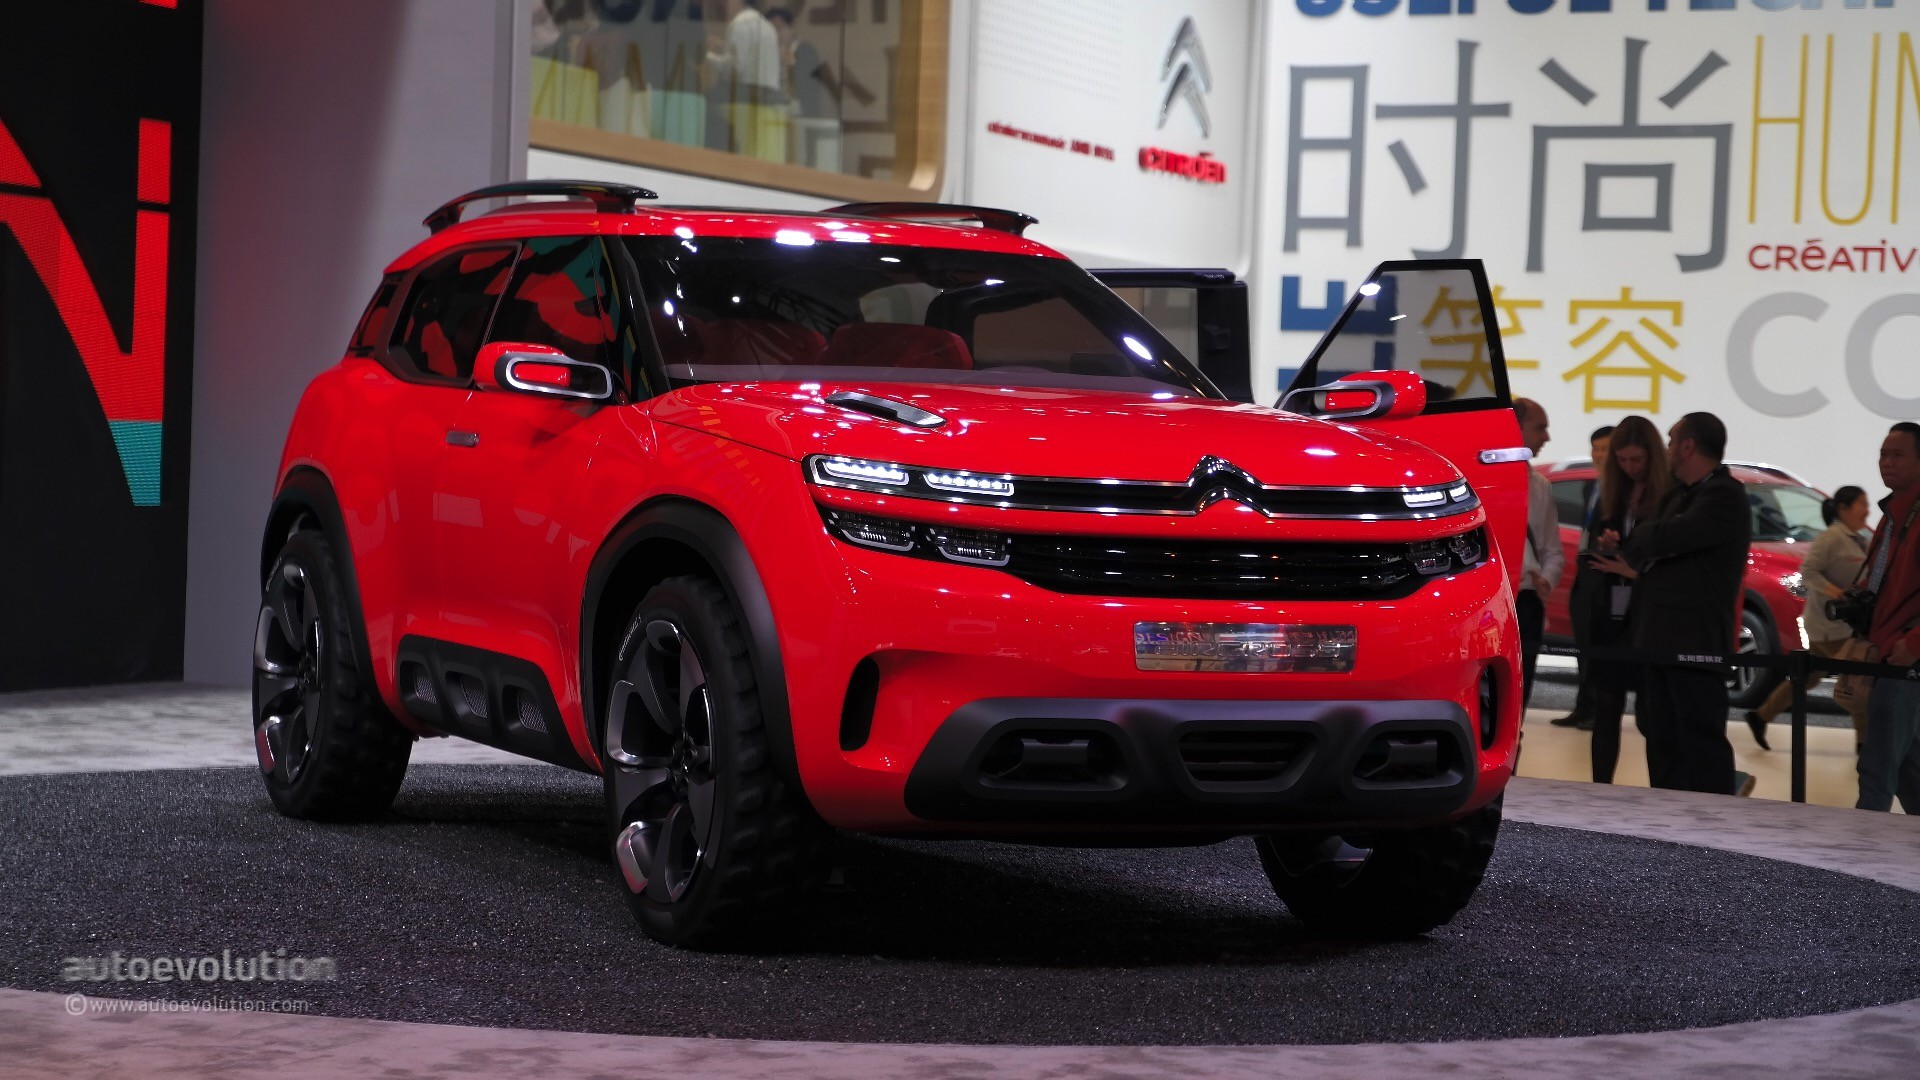 citroen announces new crossover for european factory could be the aircross autoevolution. Black Bedroom Furniture Sets. Home Design Ideas